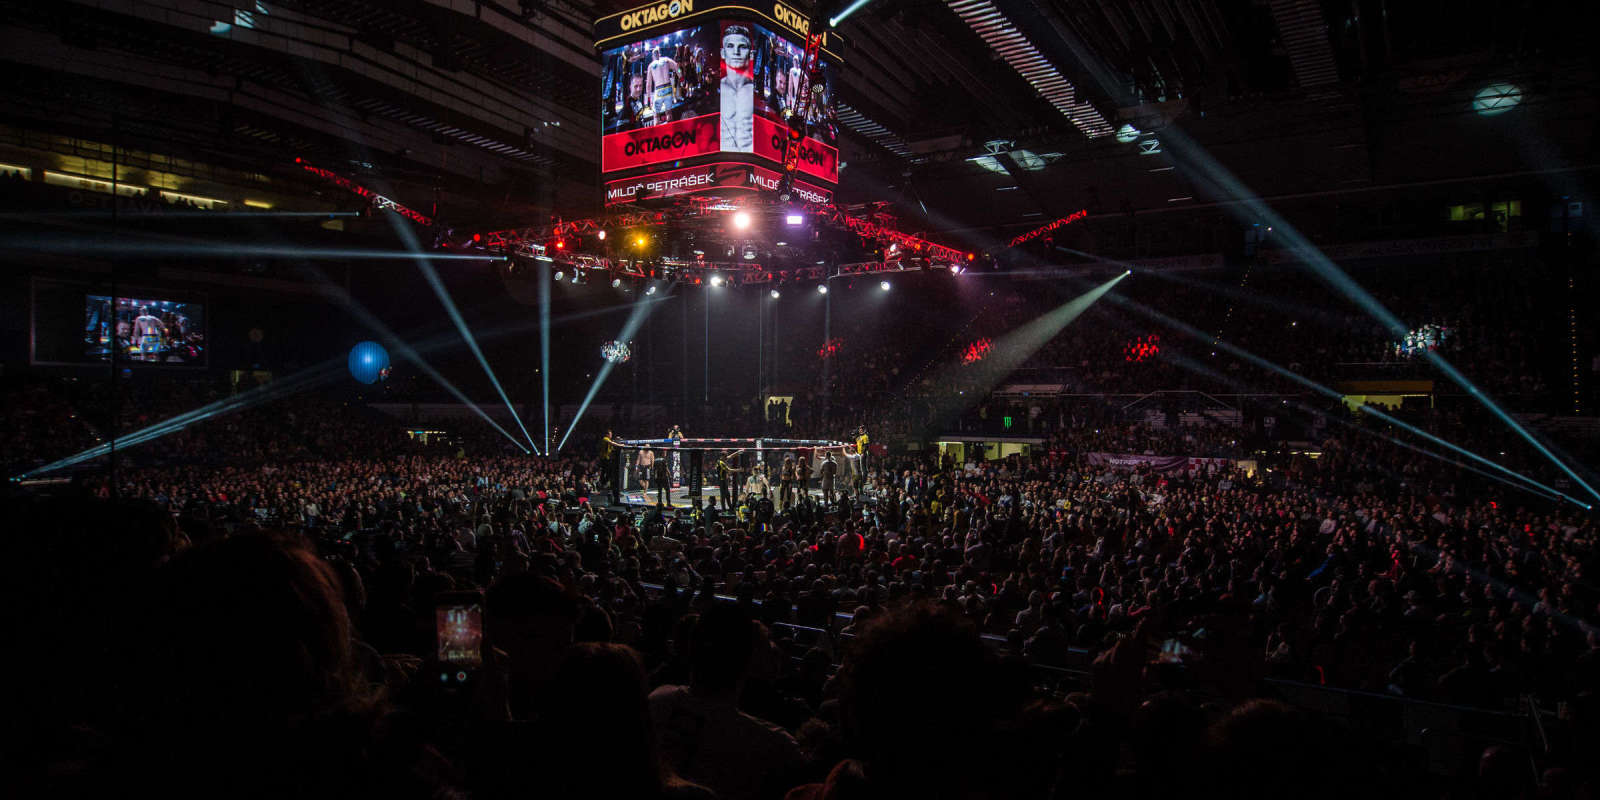 11th issue of popular Czech-Slovak MMA tournament taking place in Ostravar Arena in Ostrava